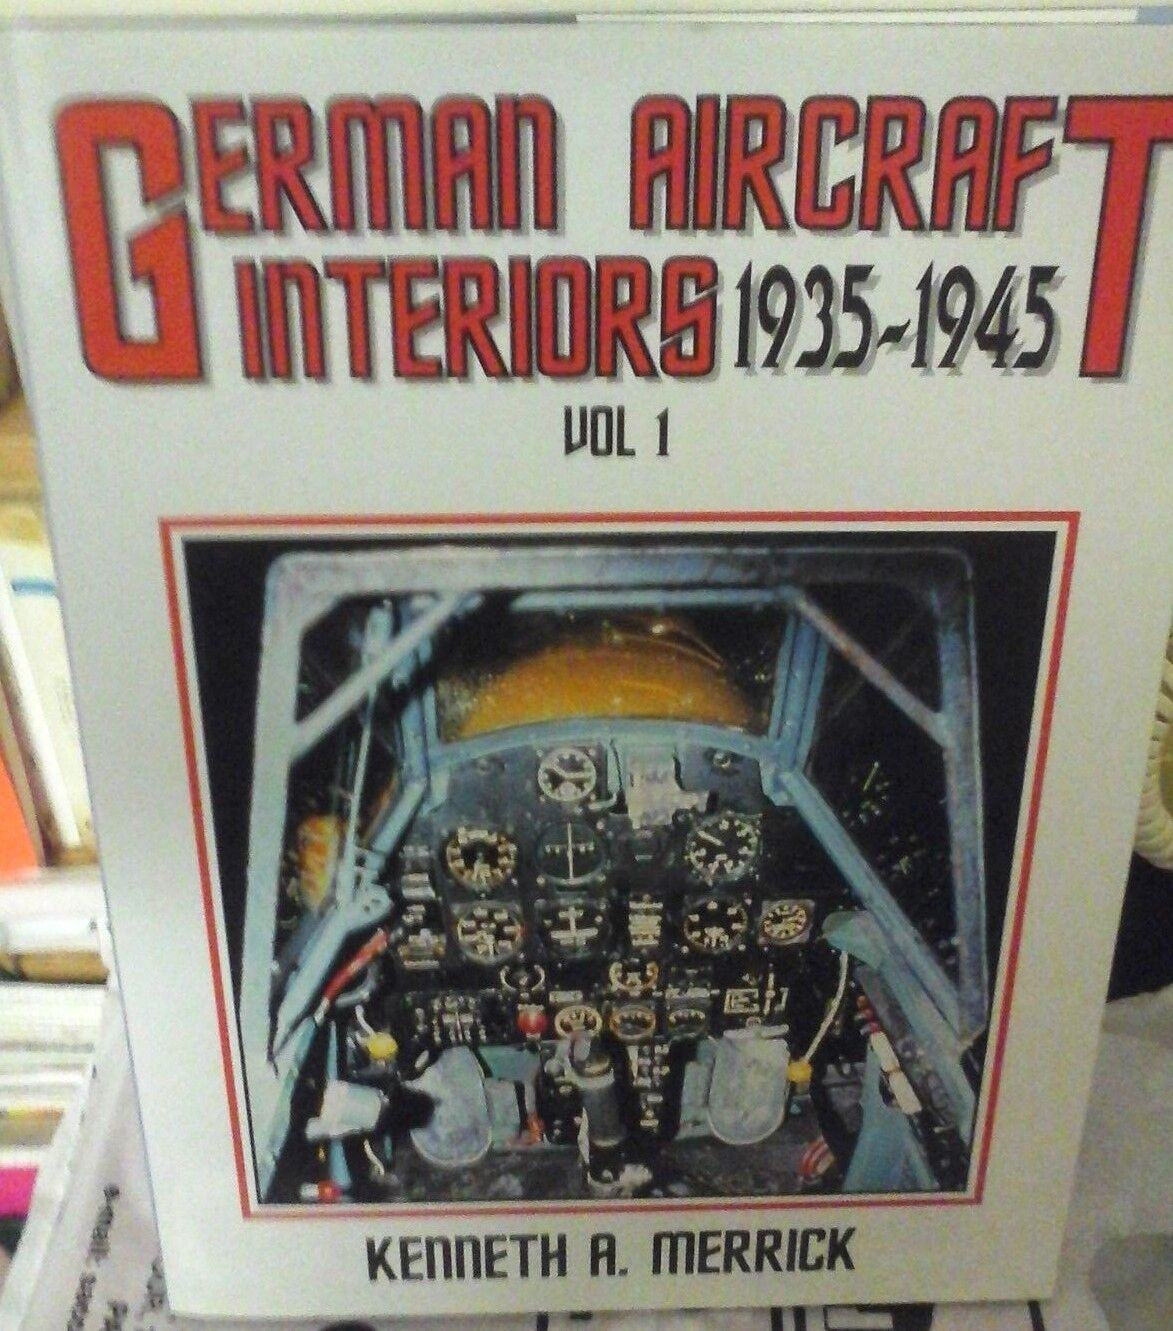 GERMAN AIRCRAFT INTERIORS 1935 1945 VOL.1-BY KENNETH A. MERRICK-MONOGRAM PUBLISH